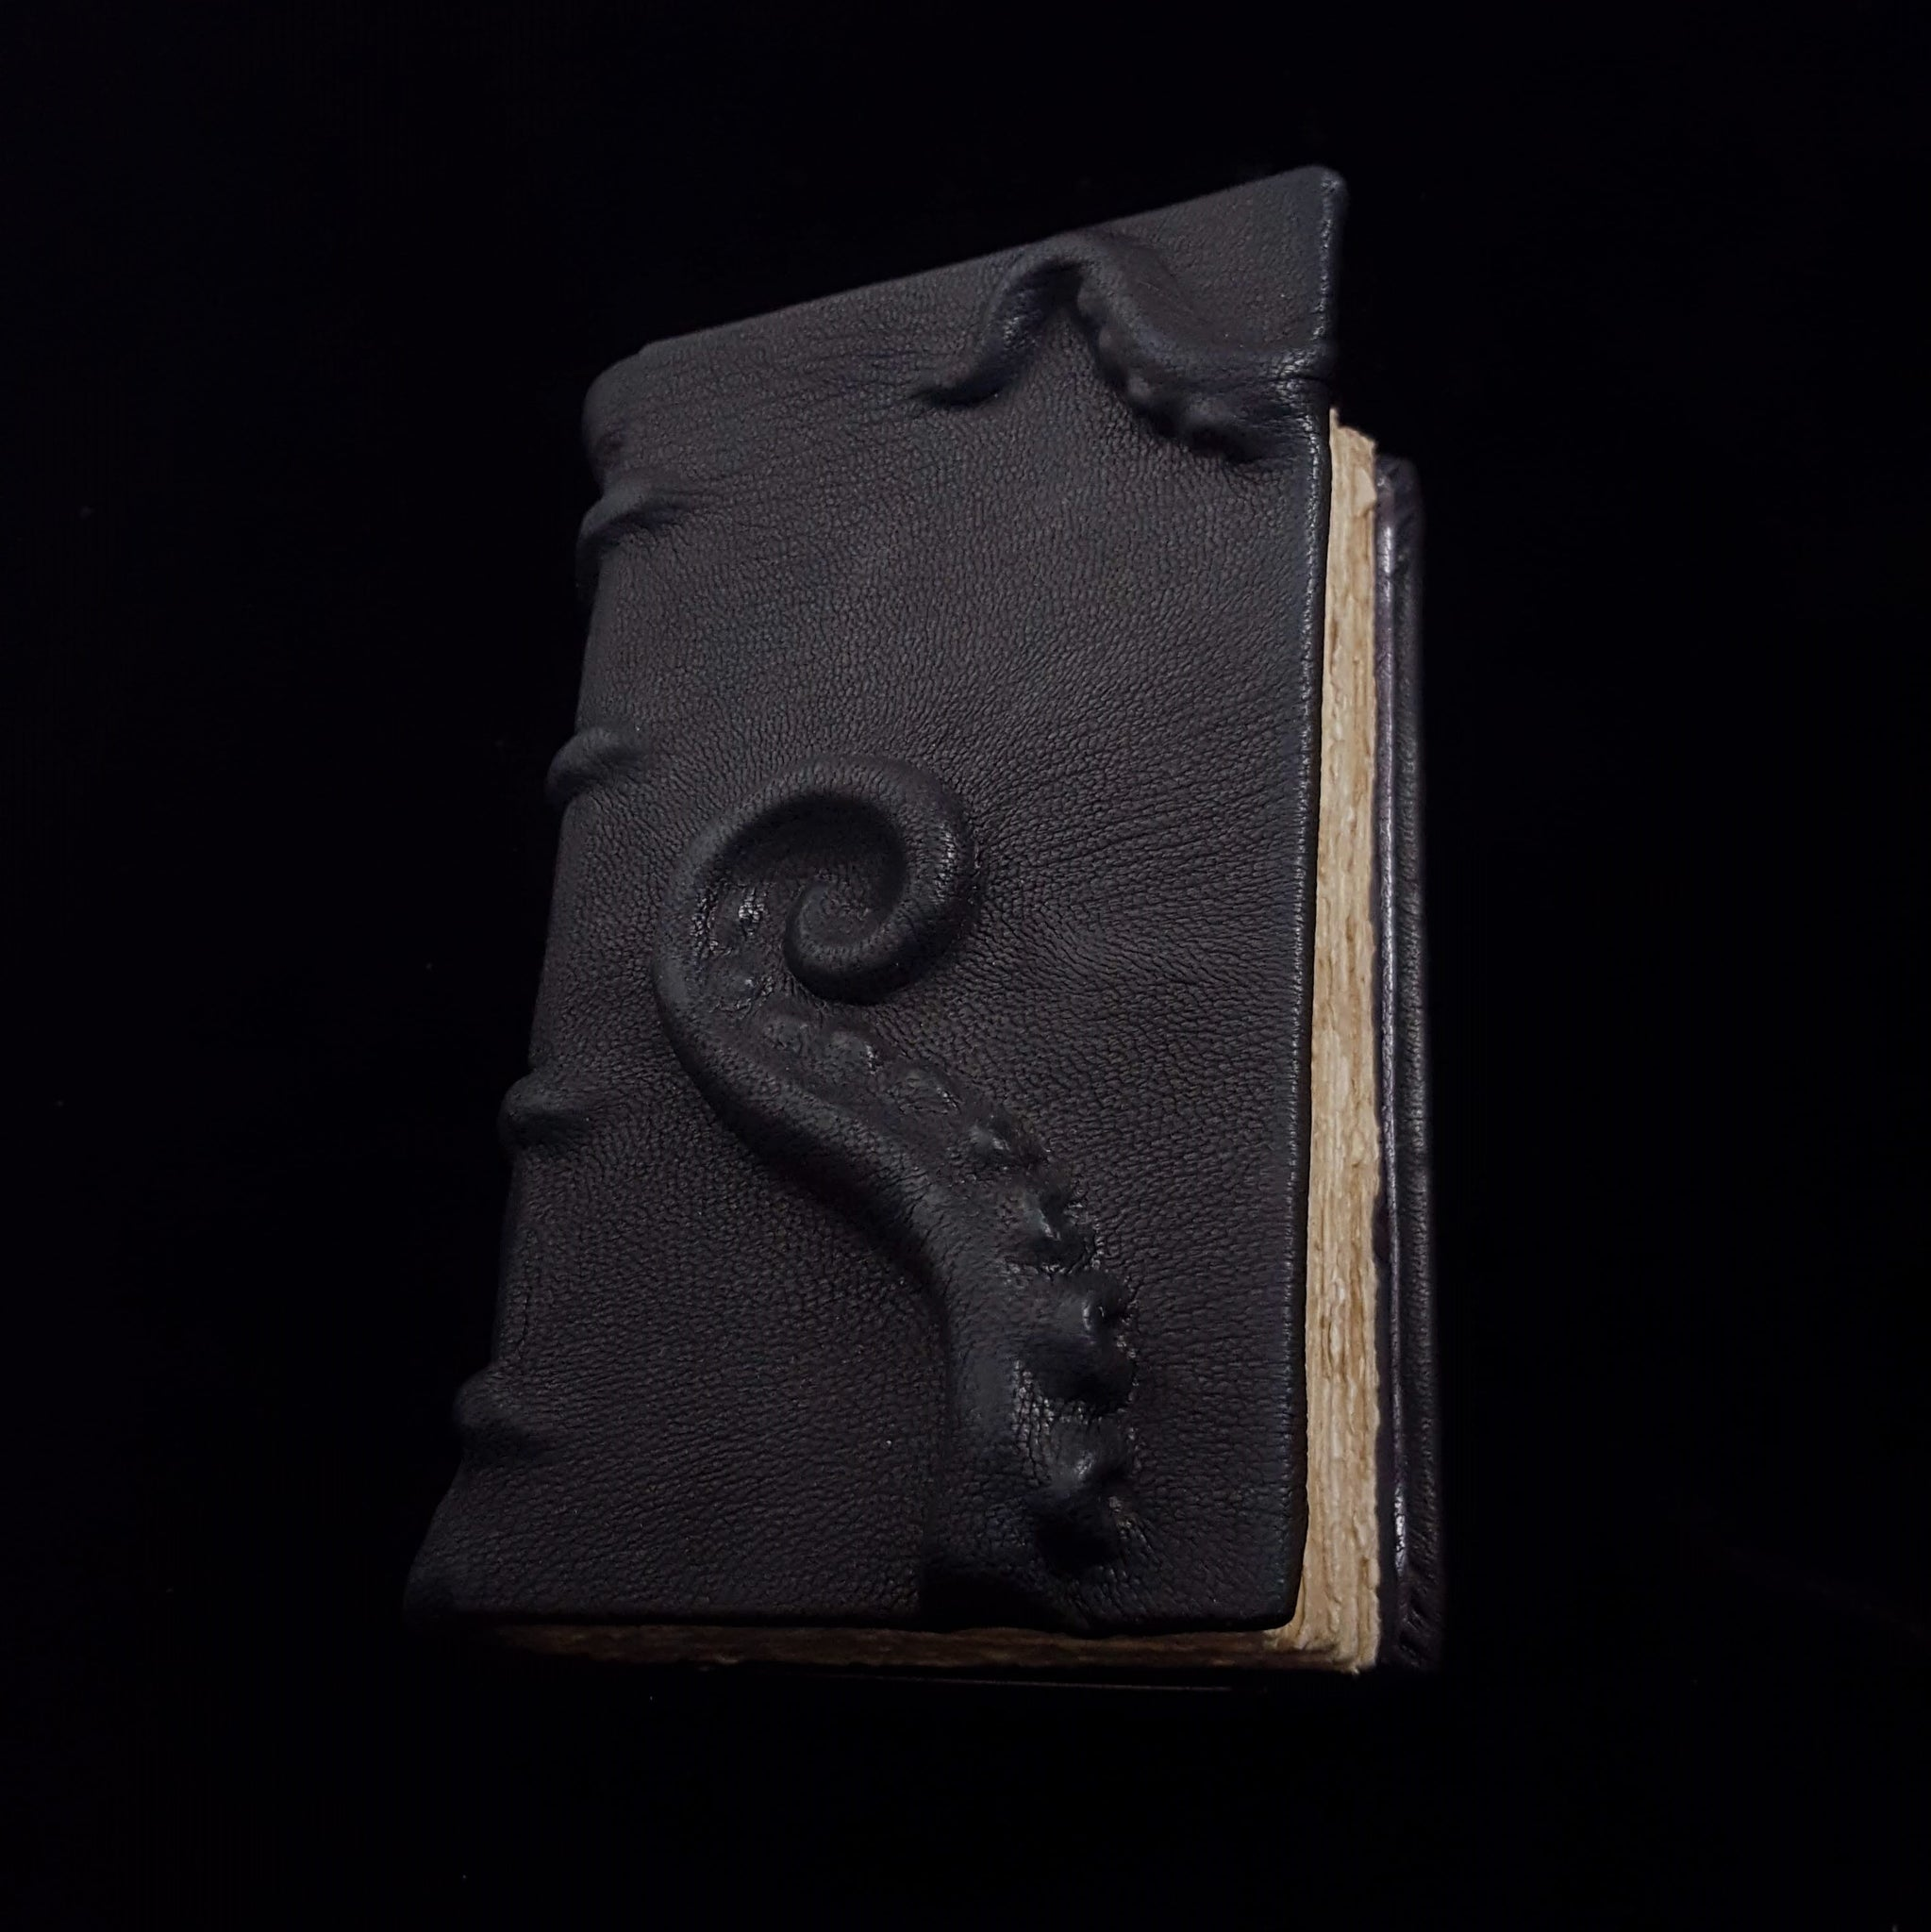 Sculpted Leather Tentacle Book